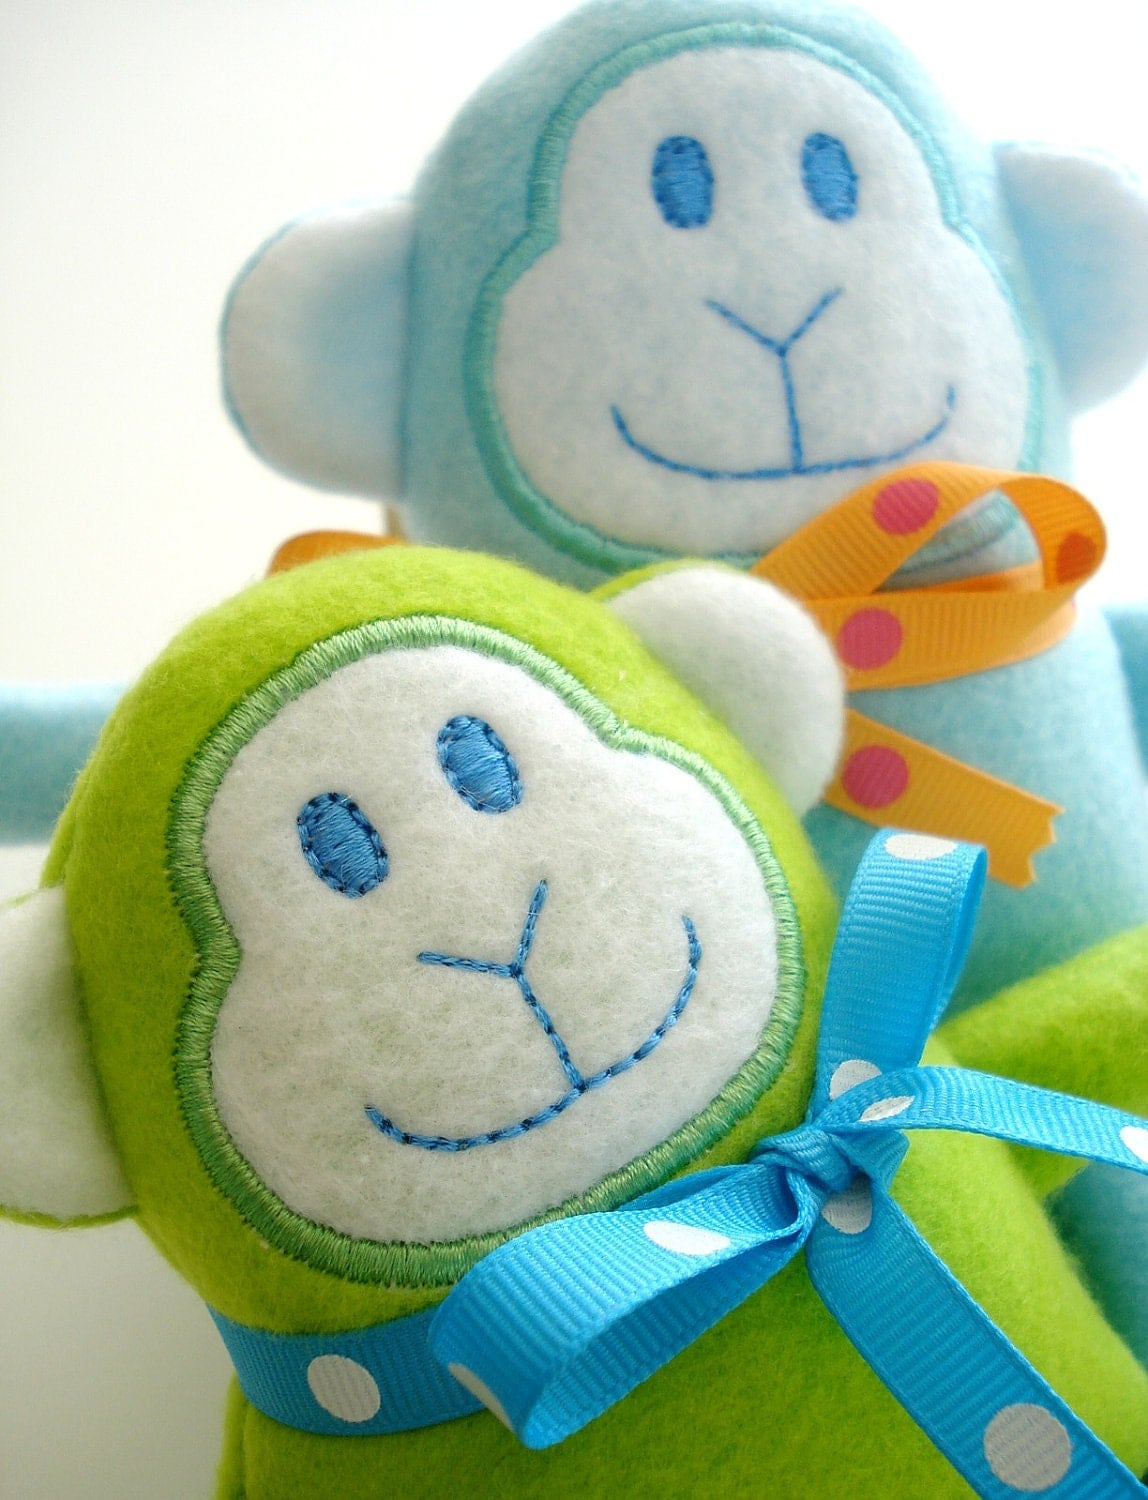 Embroidery design for machine monkey softie